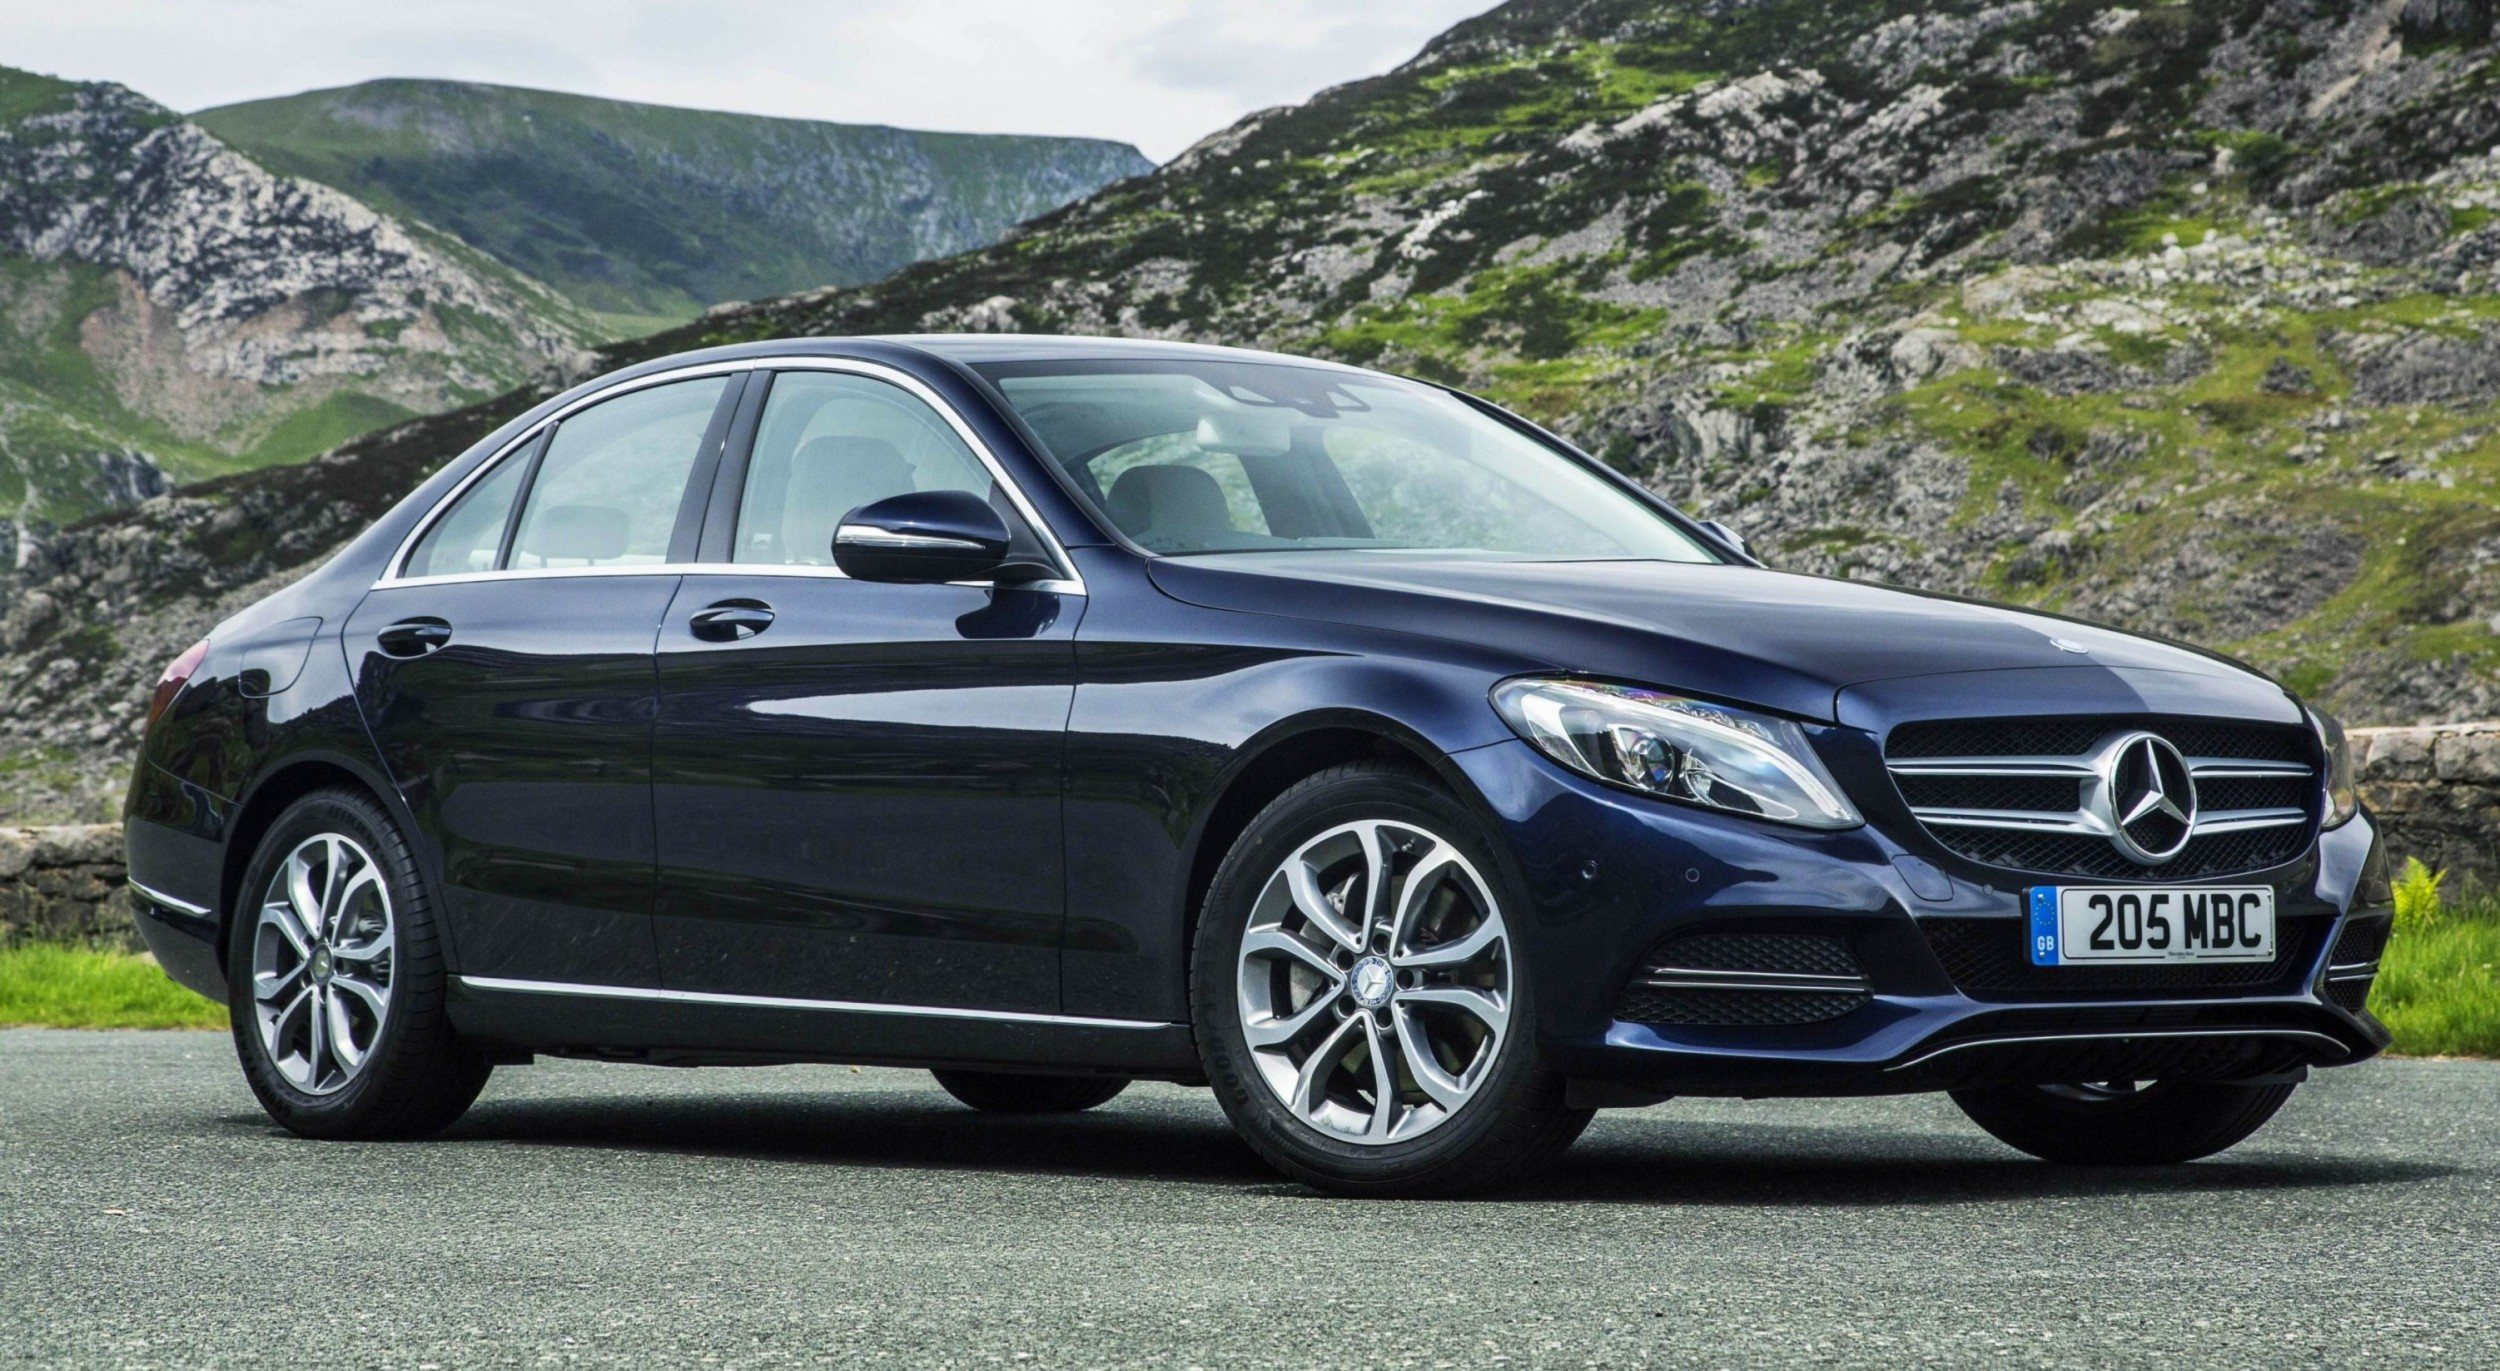 2015 mercedes benz c class in 40 new photos from london c300 and c400 both 4matic as standard 33. Black Bedroom Furniture Sets. Home Design Ideas